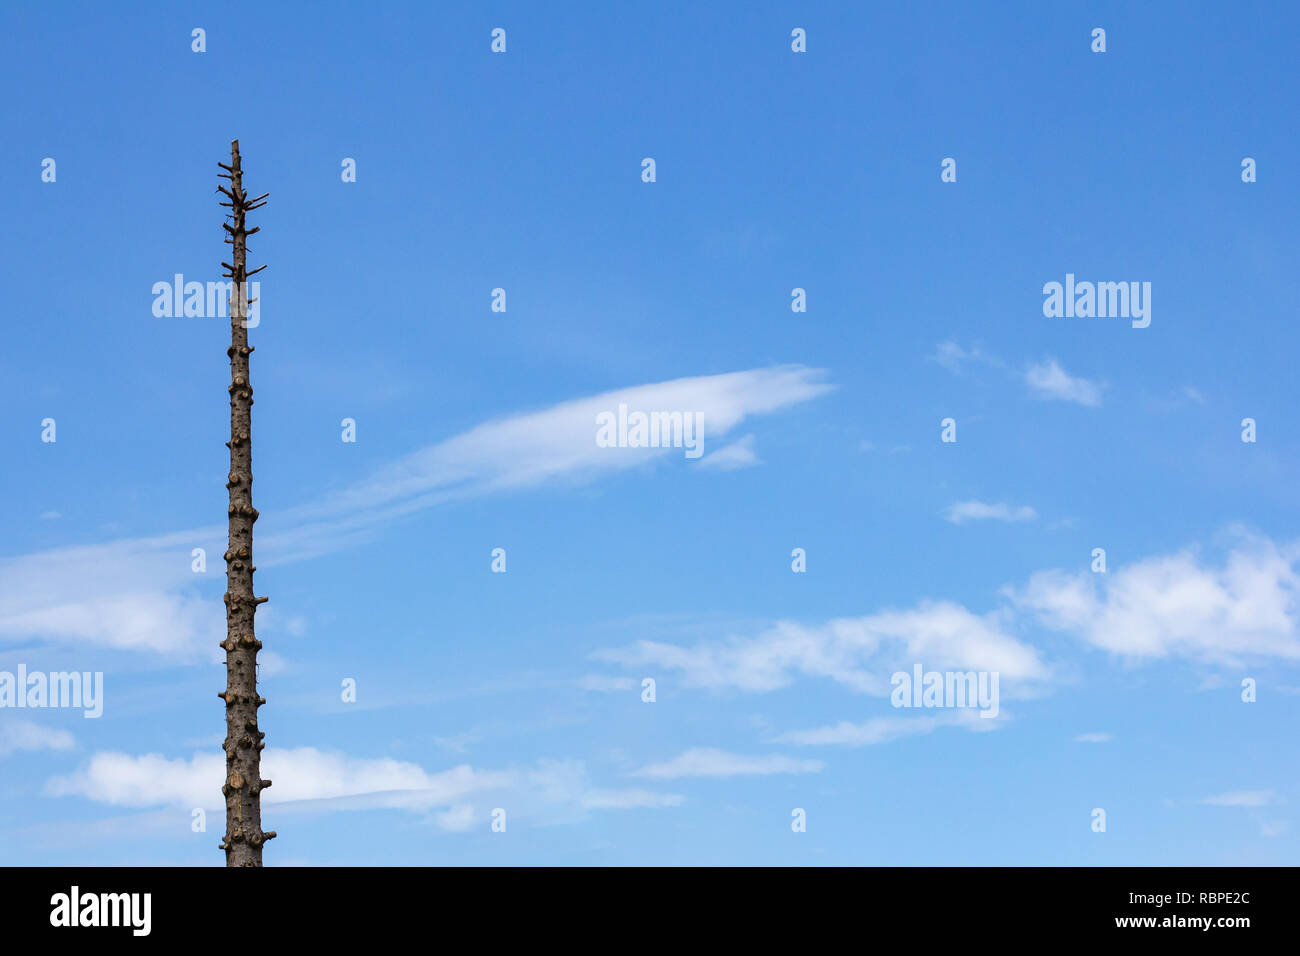 Tree with all branches cut off isolated against a blue sky with wispy clouds - Stock Image